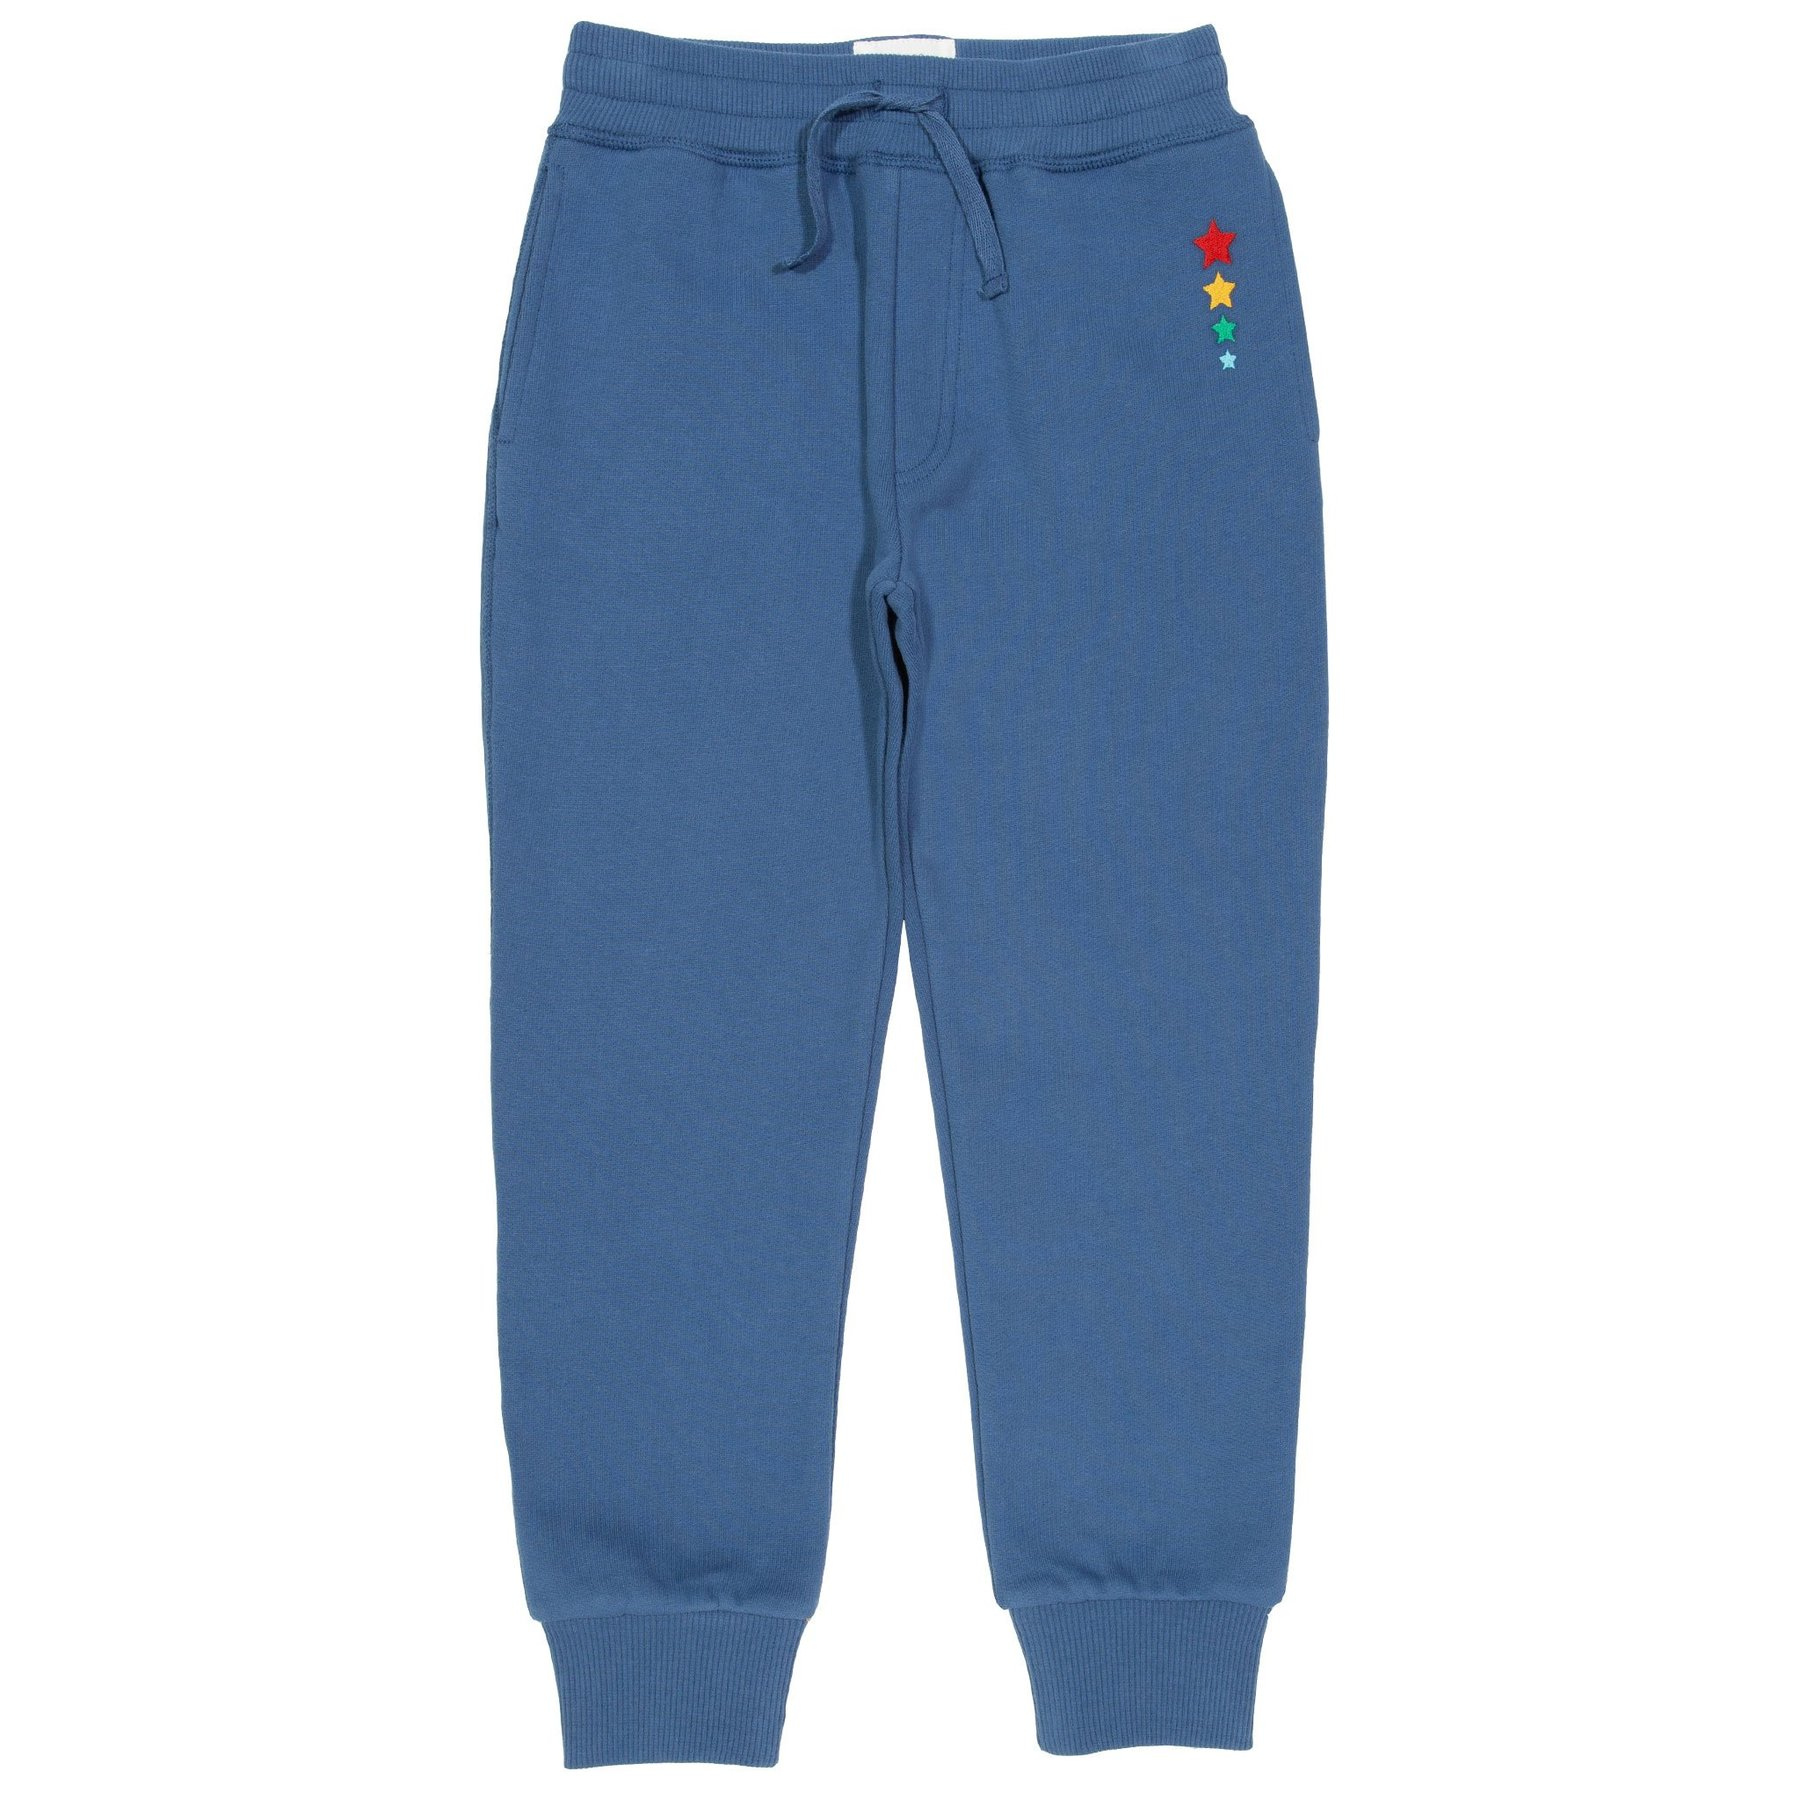 NOW £12 Kite Ready Steady Joggers (Was £24)